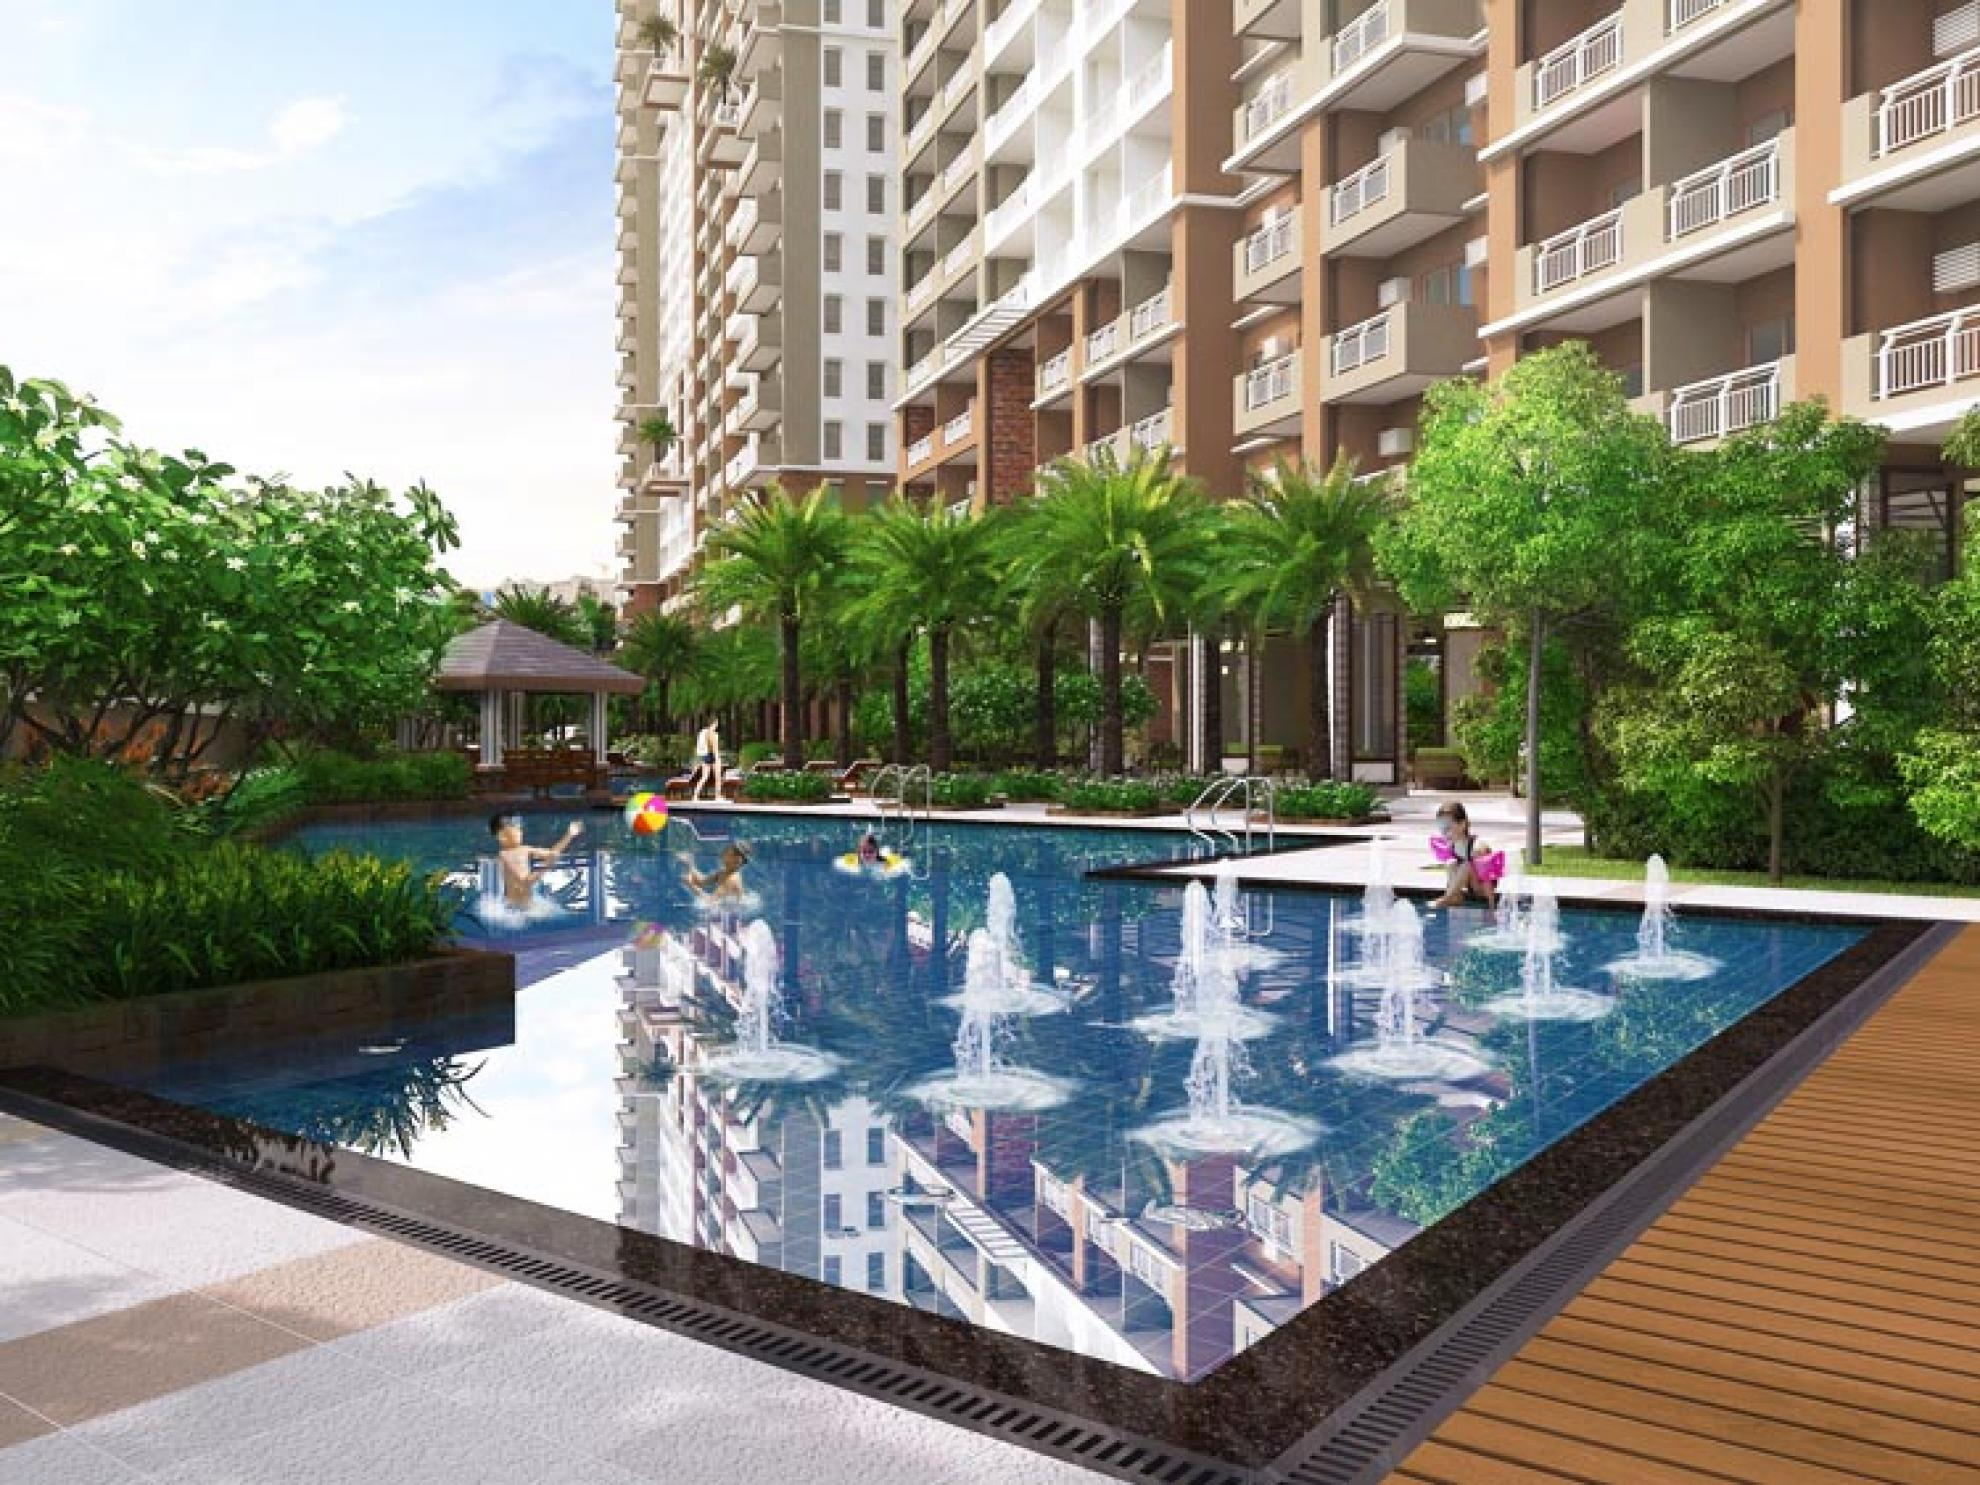 DMCI Homes' Brixton Place: Where nature and dynamic city-living converge